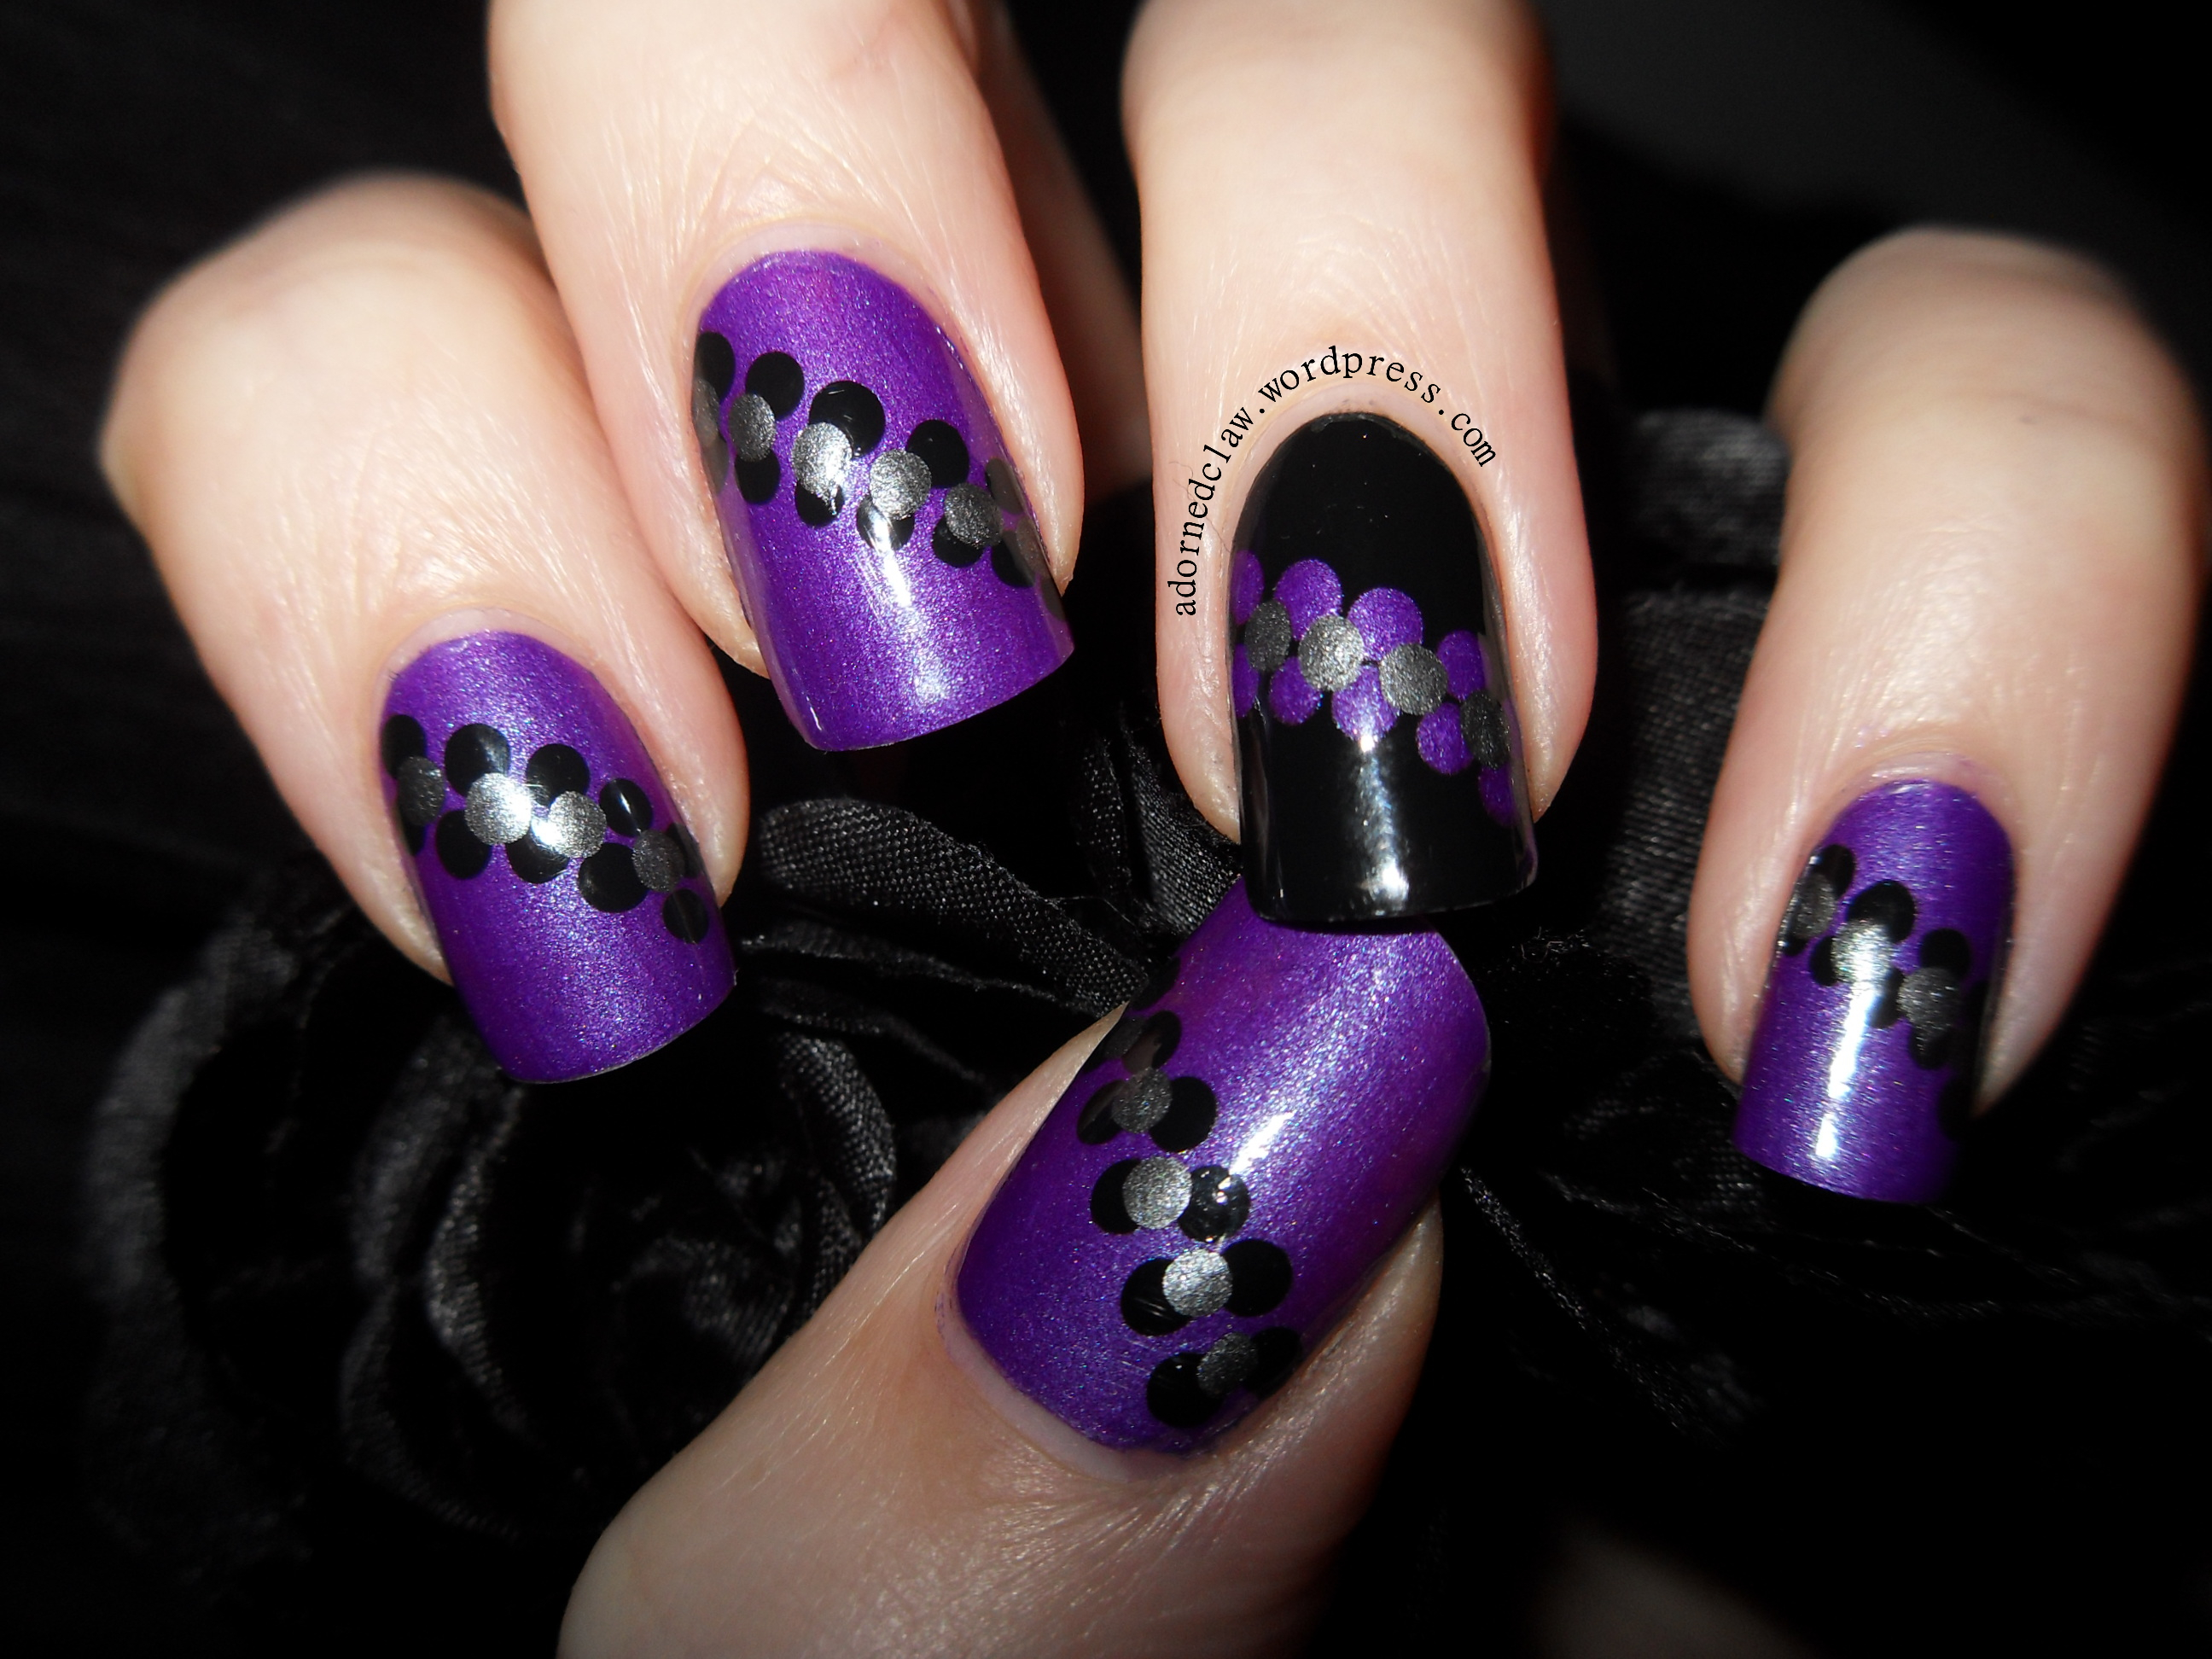 Poke, Snap and Scorn! Purple Dotted Stripe Nails. | The Adorned Claw